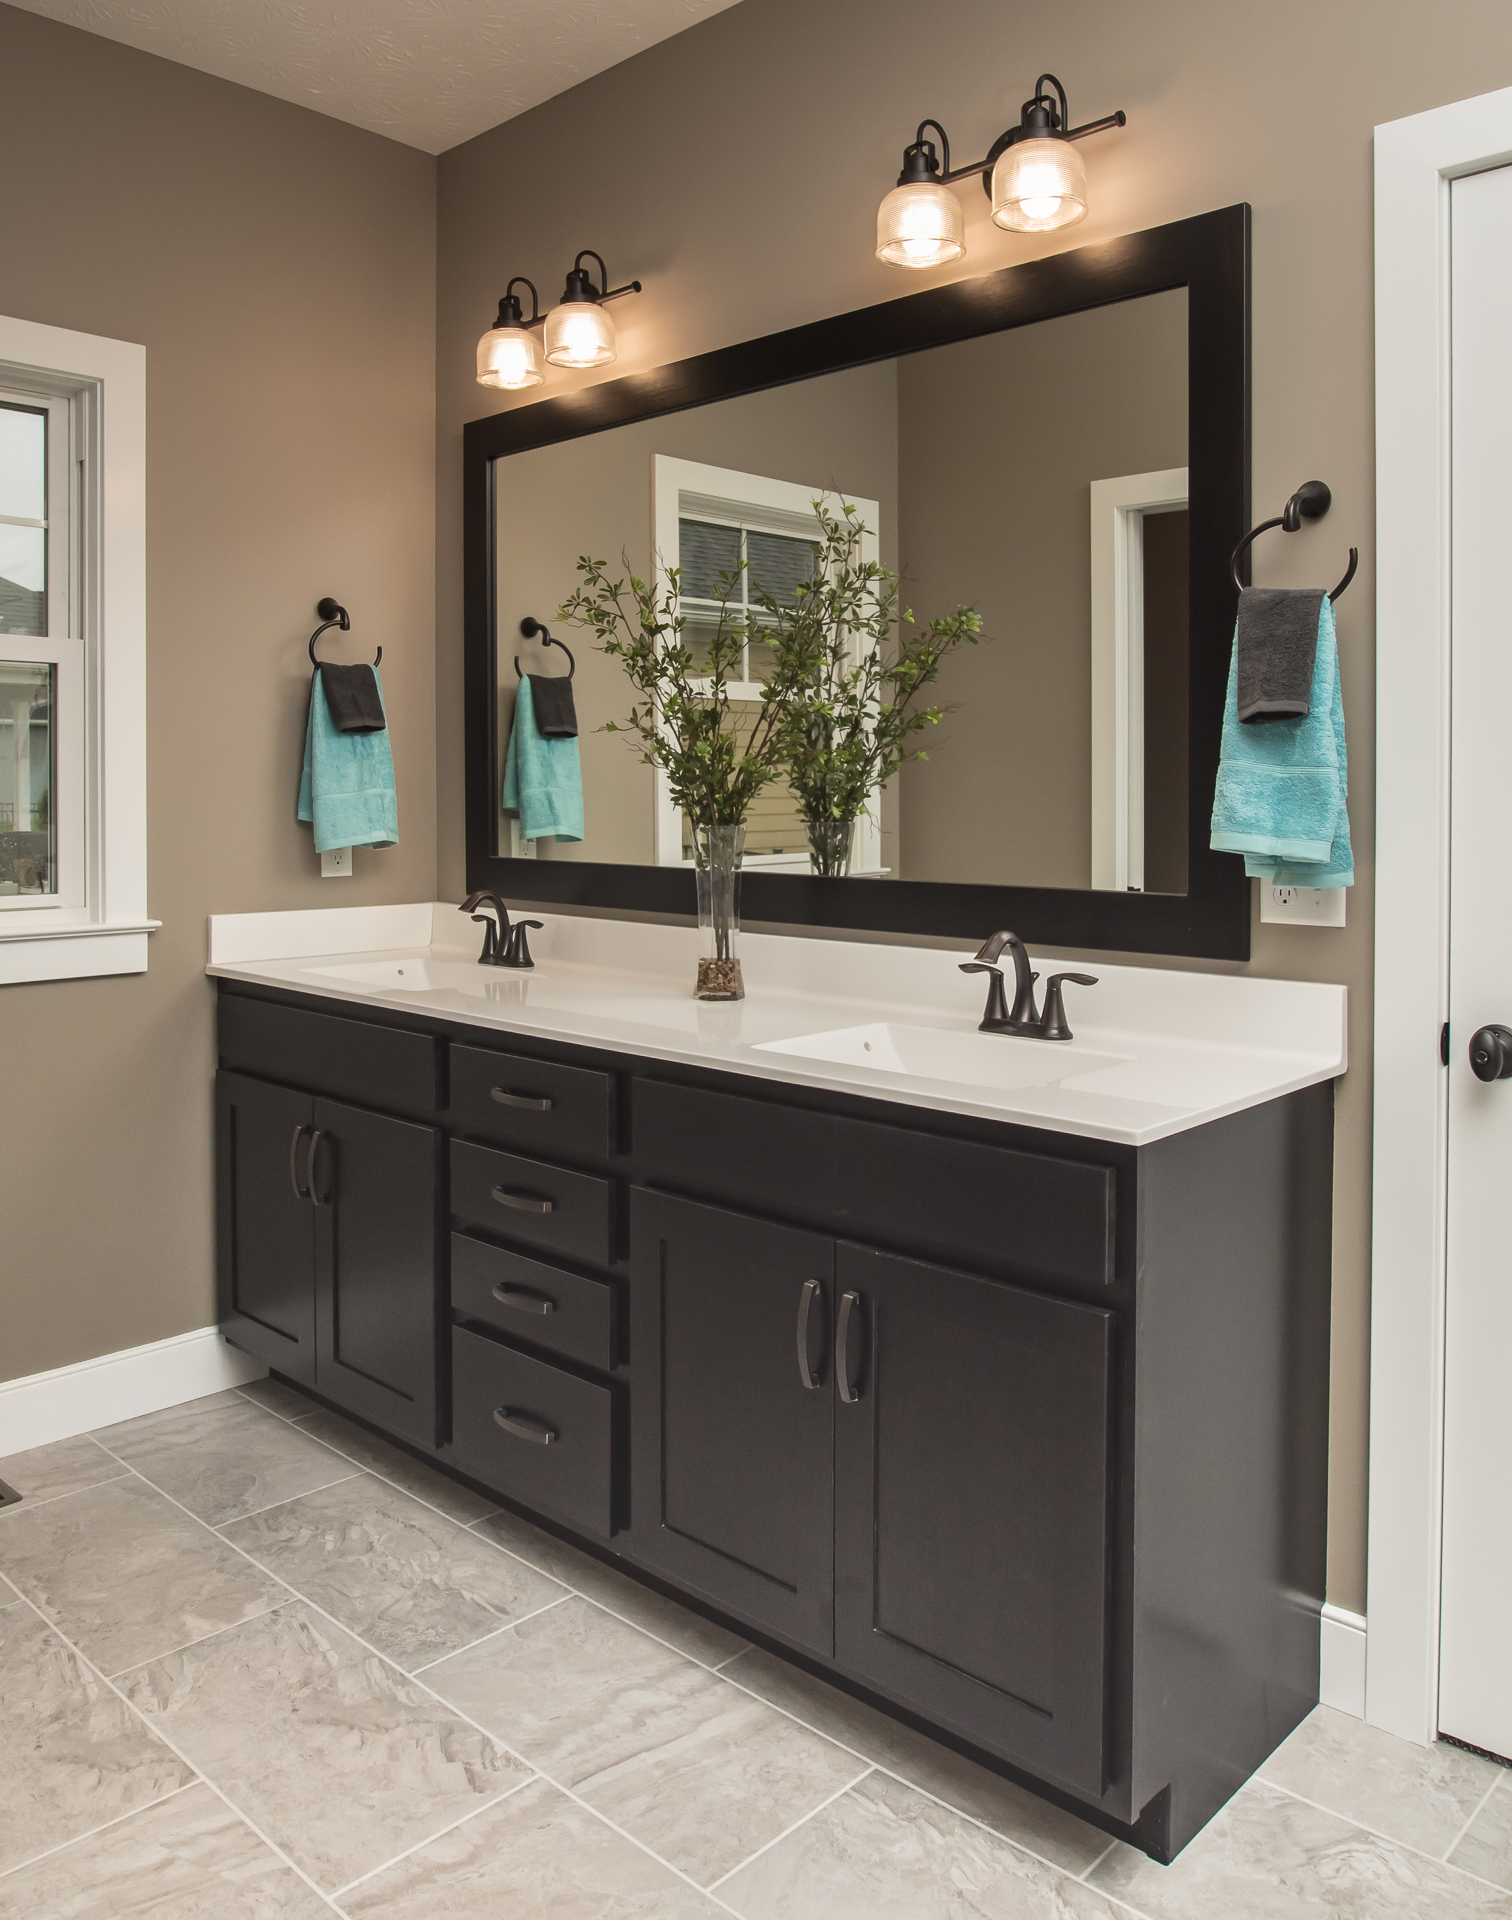 Maple Norwich in double espresso cabinets, one-piece cultured marble  #05 solid white wave sink, Moen Eva oil rubbed bronze faucets